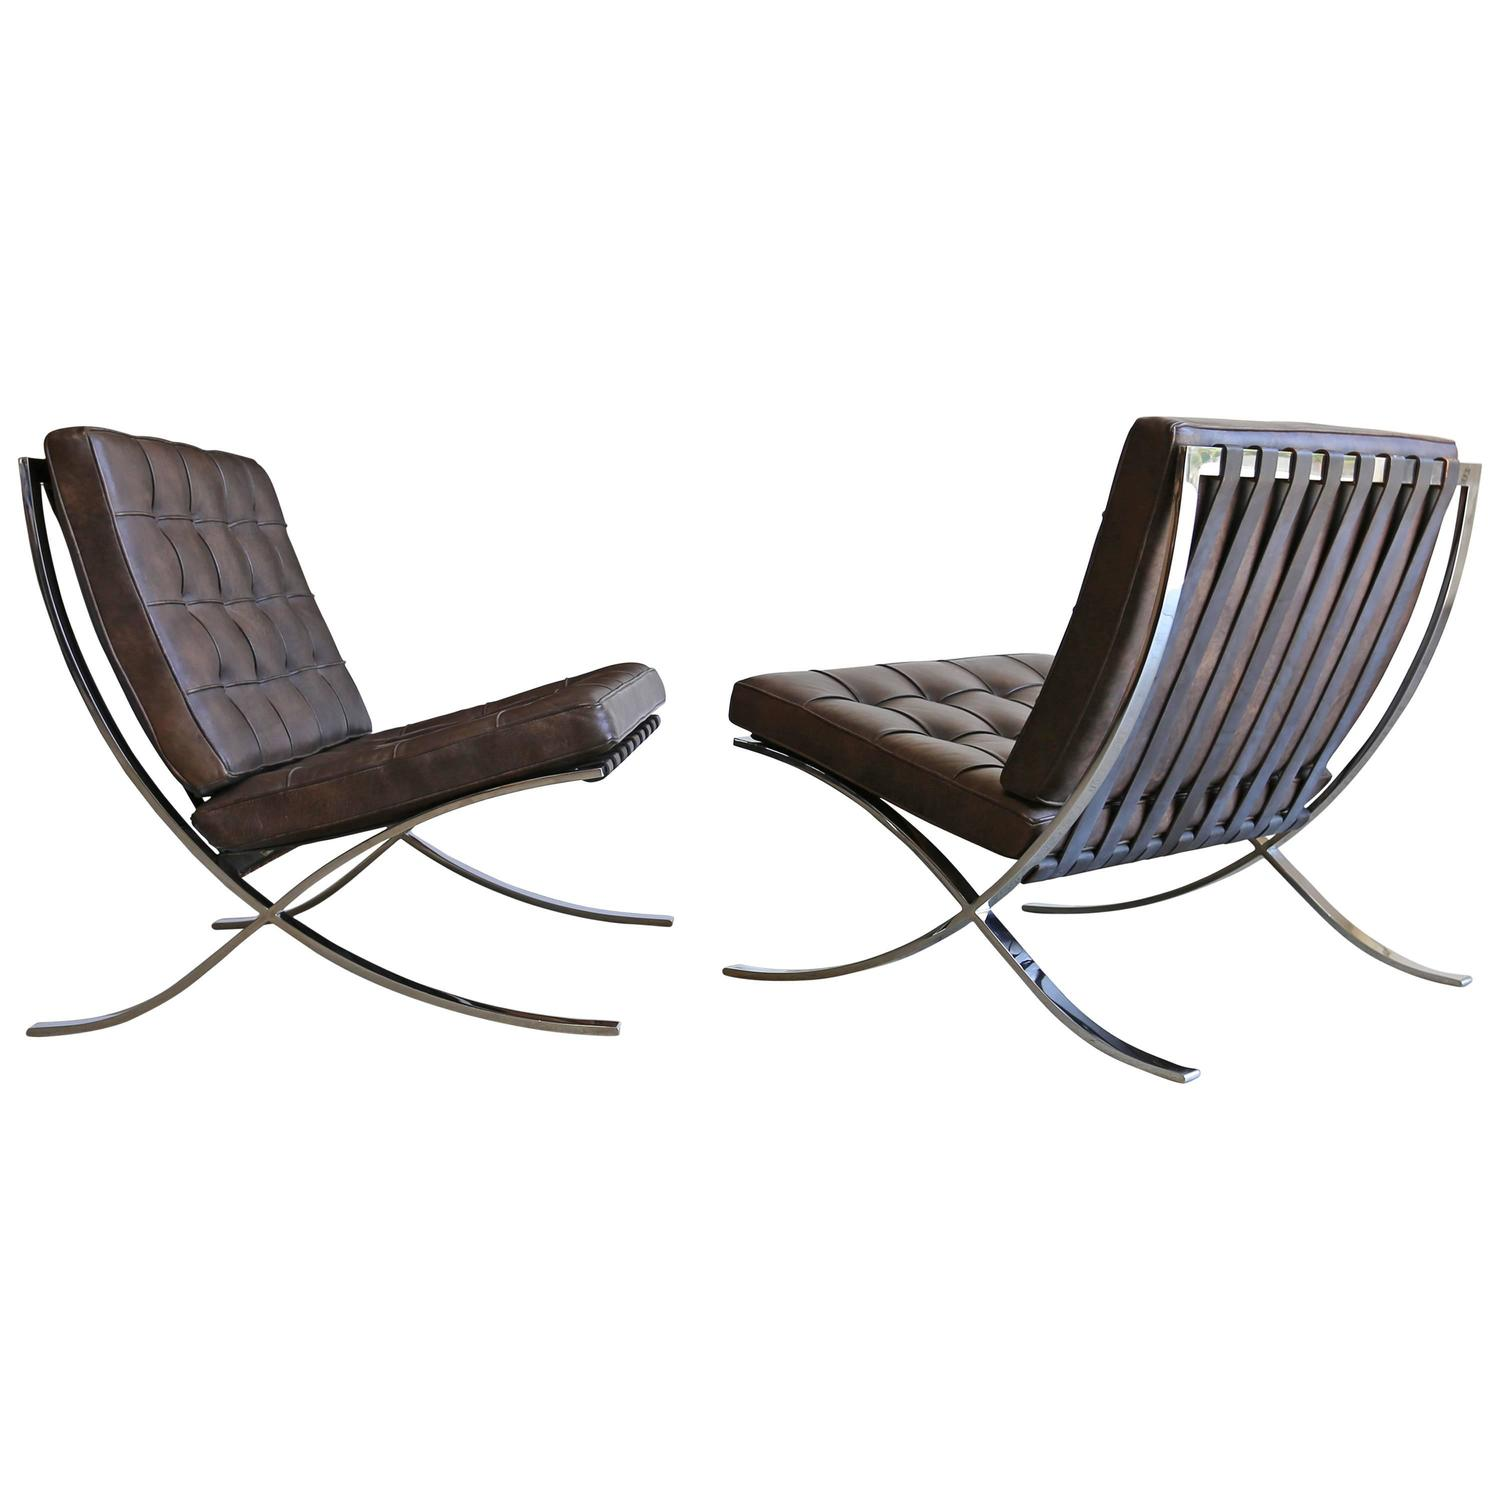 rare barcelona chairs by ludwig mies van der rohe for gerald r griffith at 1stdibs. Black Bedroom Furniture Sets. Home Design Ideas